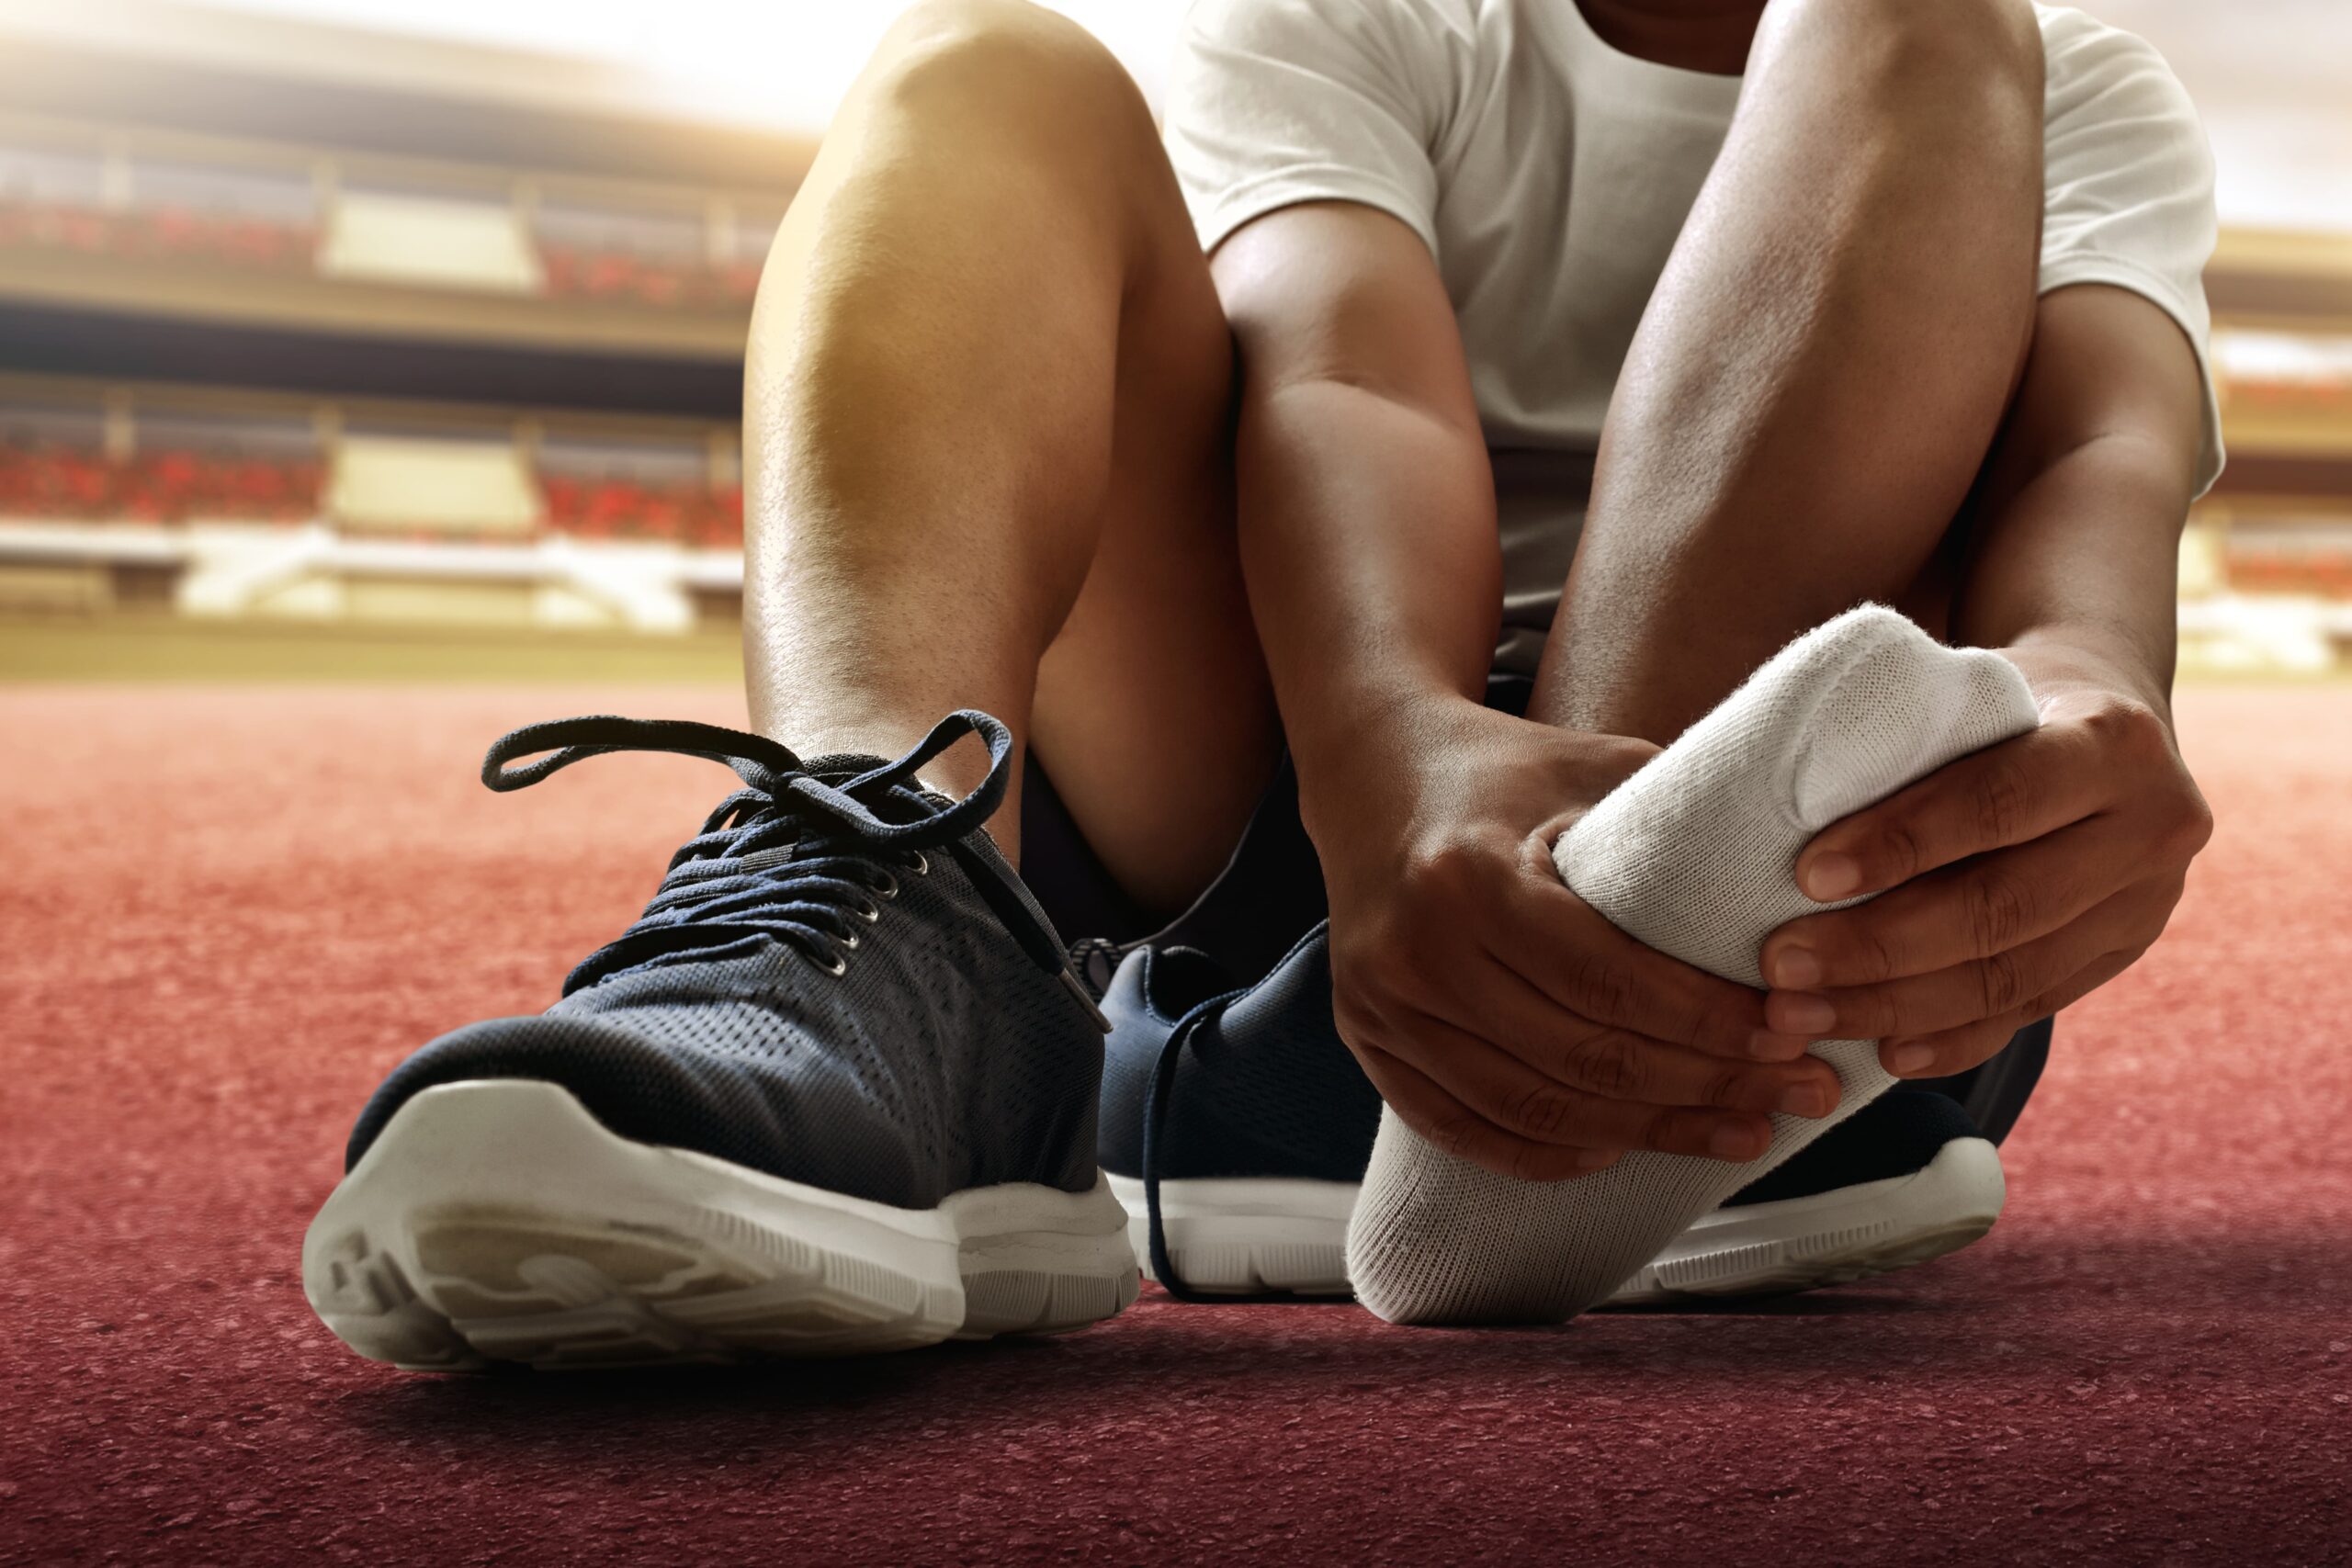 How To Avoid Exercise-Related Foot Injuries